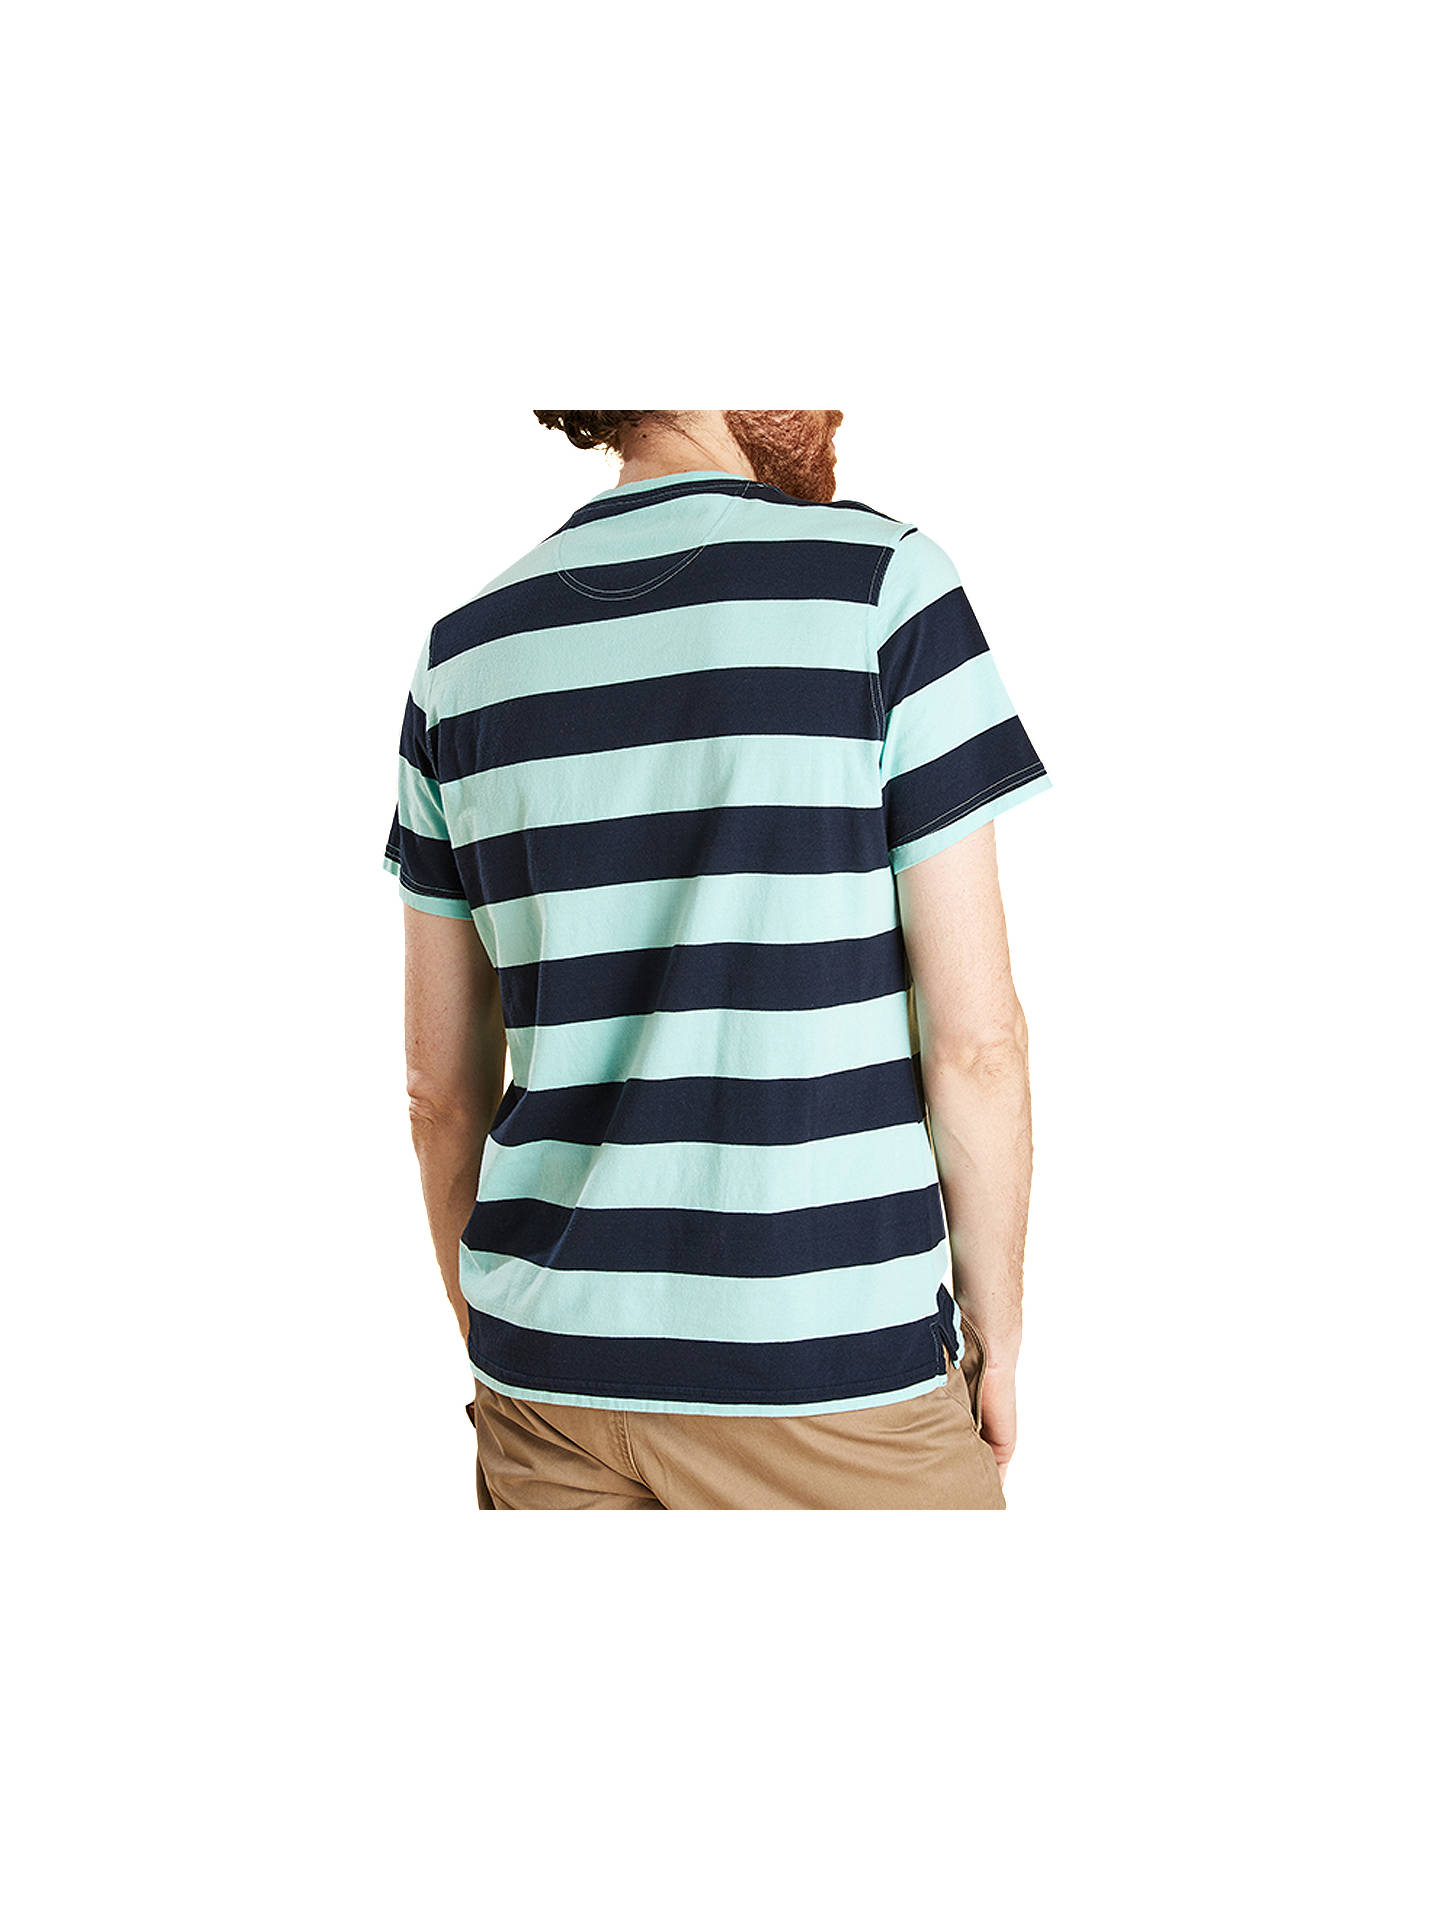 BuyBarbour Bass Short Sleeve Stripe T-Shirt, Aquamarine, S Online at johnlewis.com